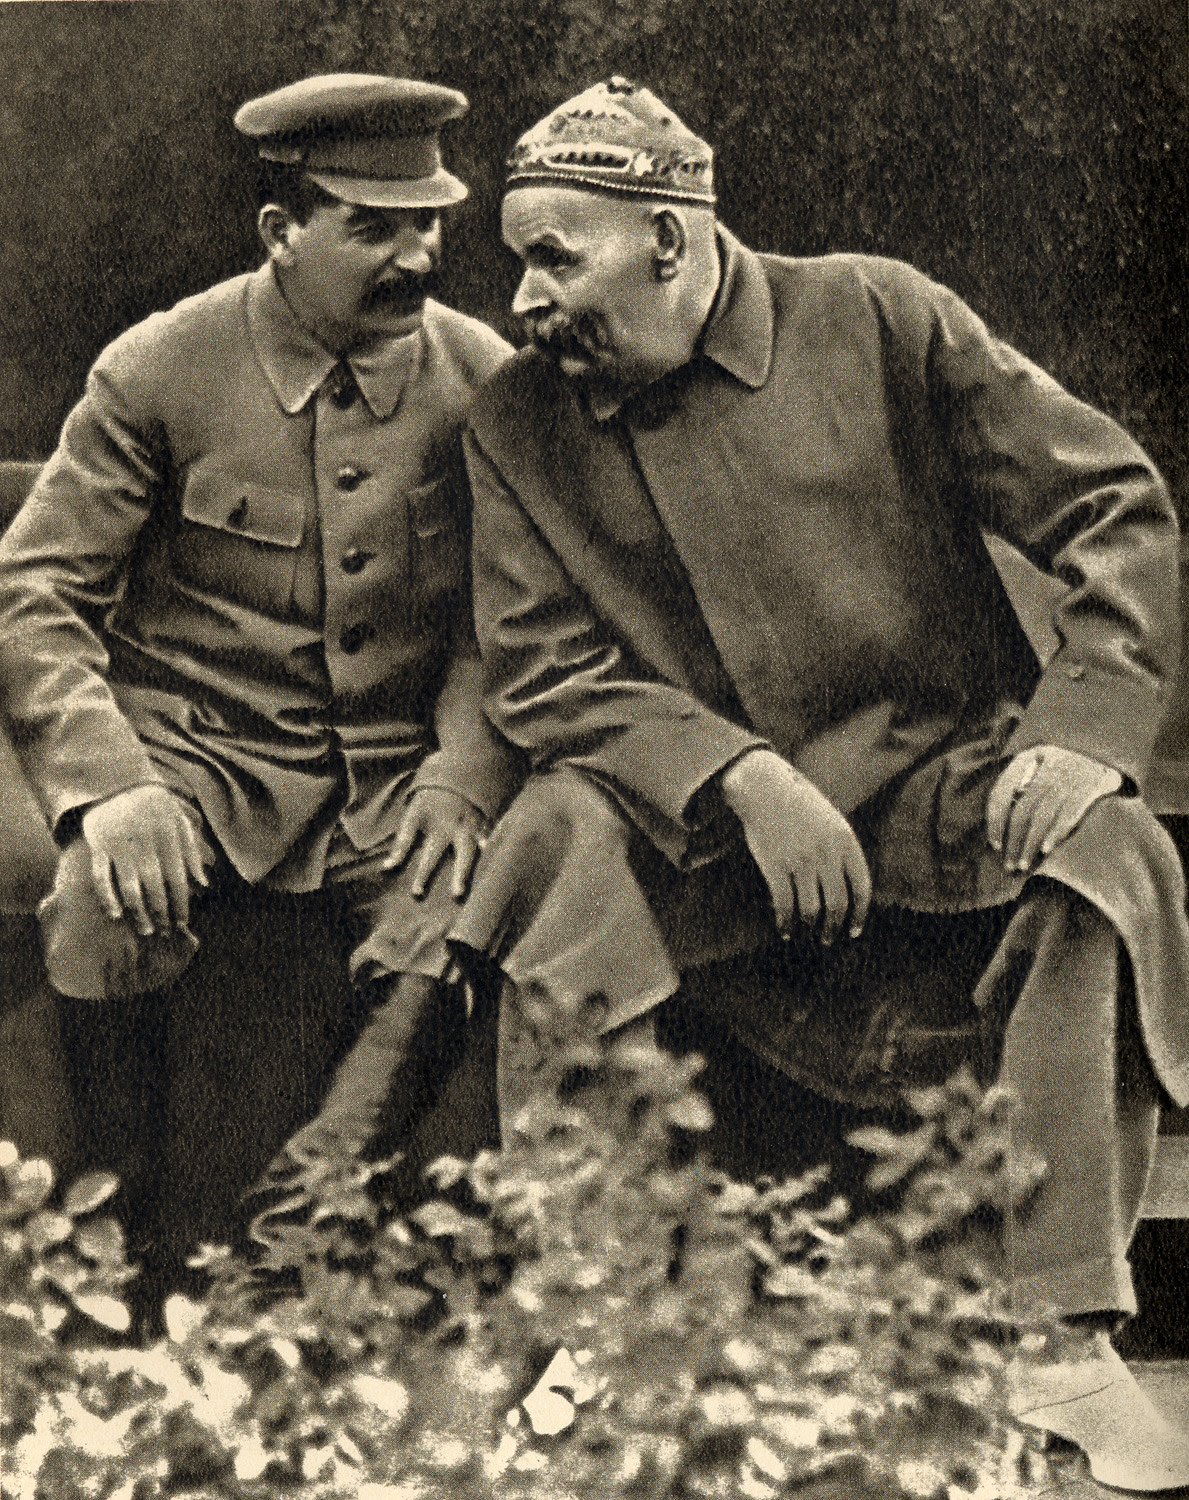 http://upload.wikimedia.org/wikipedia/commons/6/60/Joseph_Stalin_and_Maxim_Gorky%2C_1931.jpg